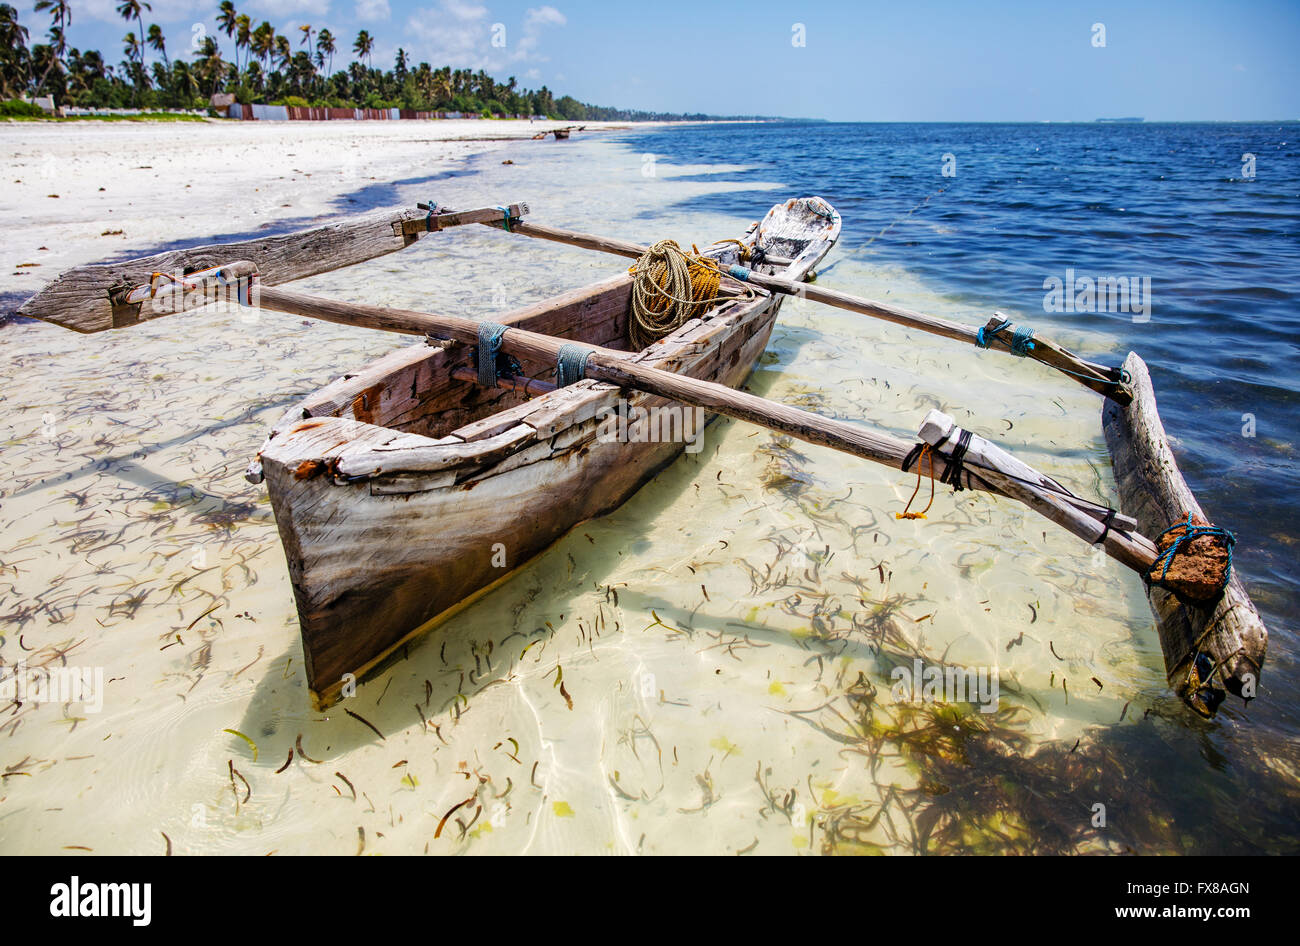 C Lion Outrigger Canoe Wooden Dhow Sto...